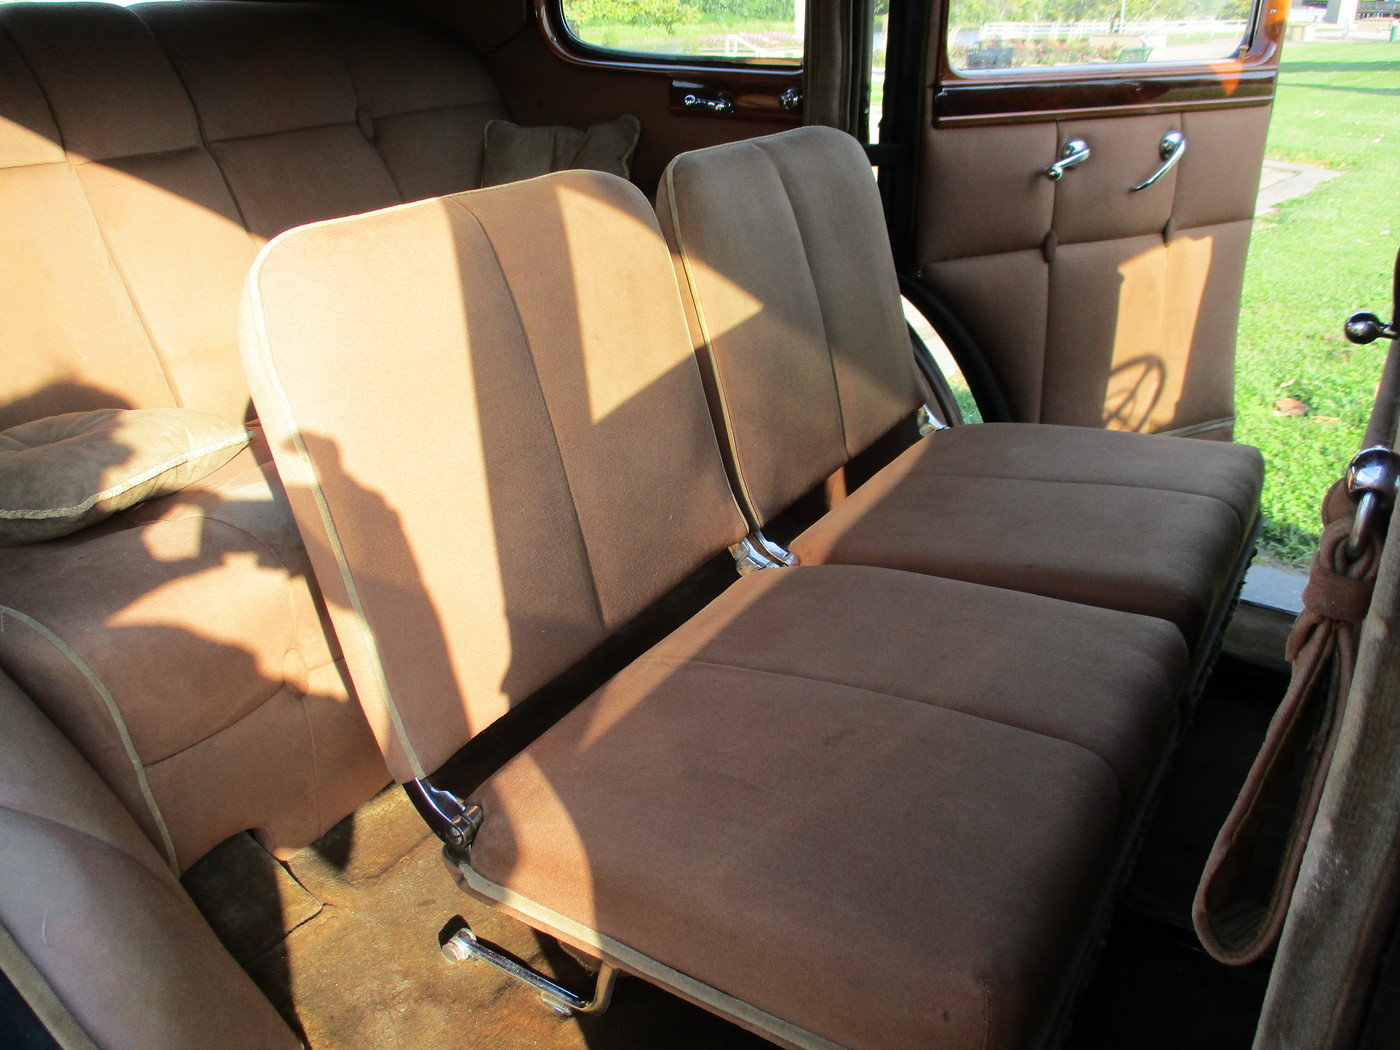 1939 Packard Model 1708 12 Cylinder Limousine For Sale (picture 8 of 12)